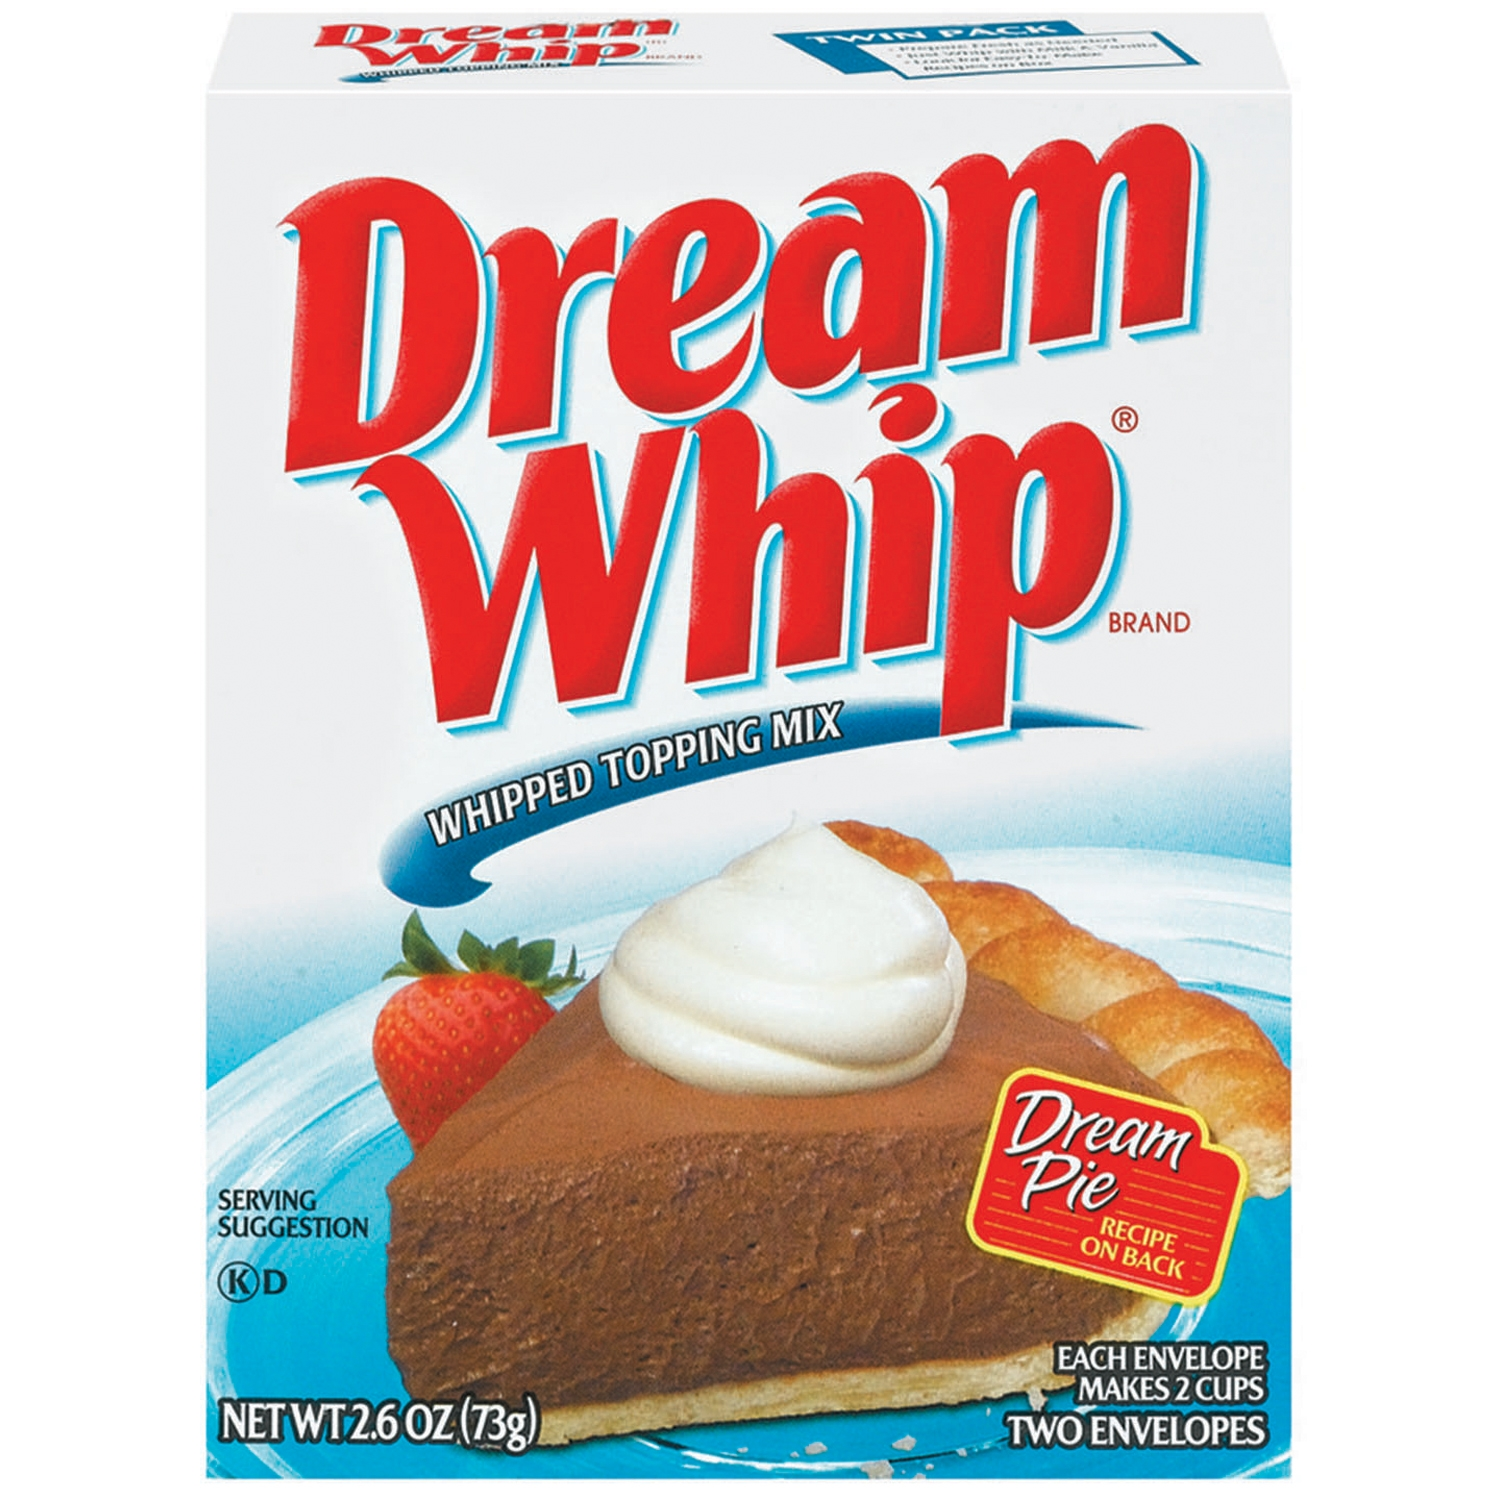 Dream Whip Whipped Topping Mix 2 ct Box